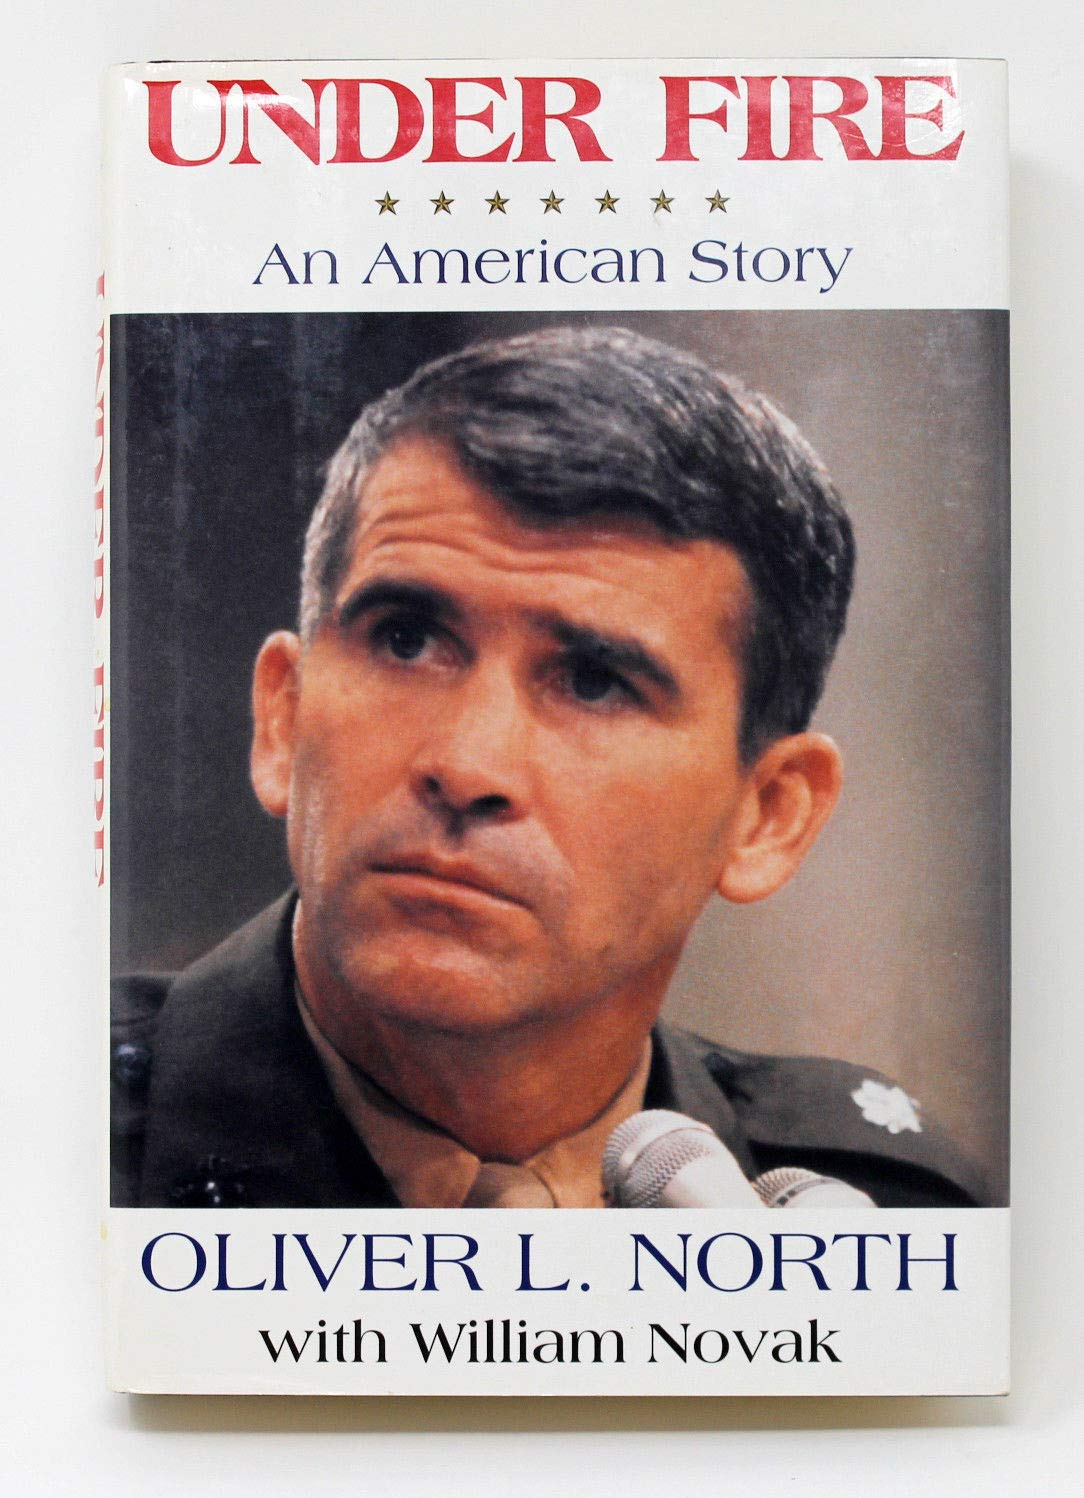 Oliver North Autographed Signed Hardback Book Under Fire Beckett Authentic